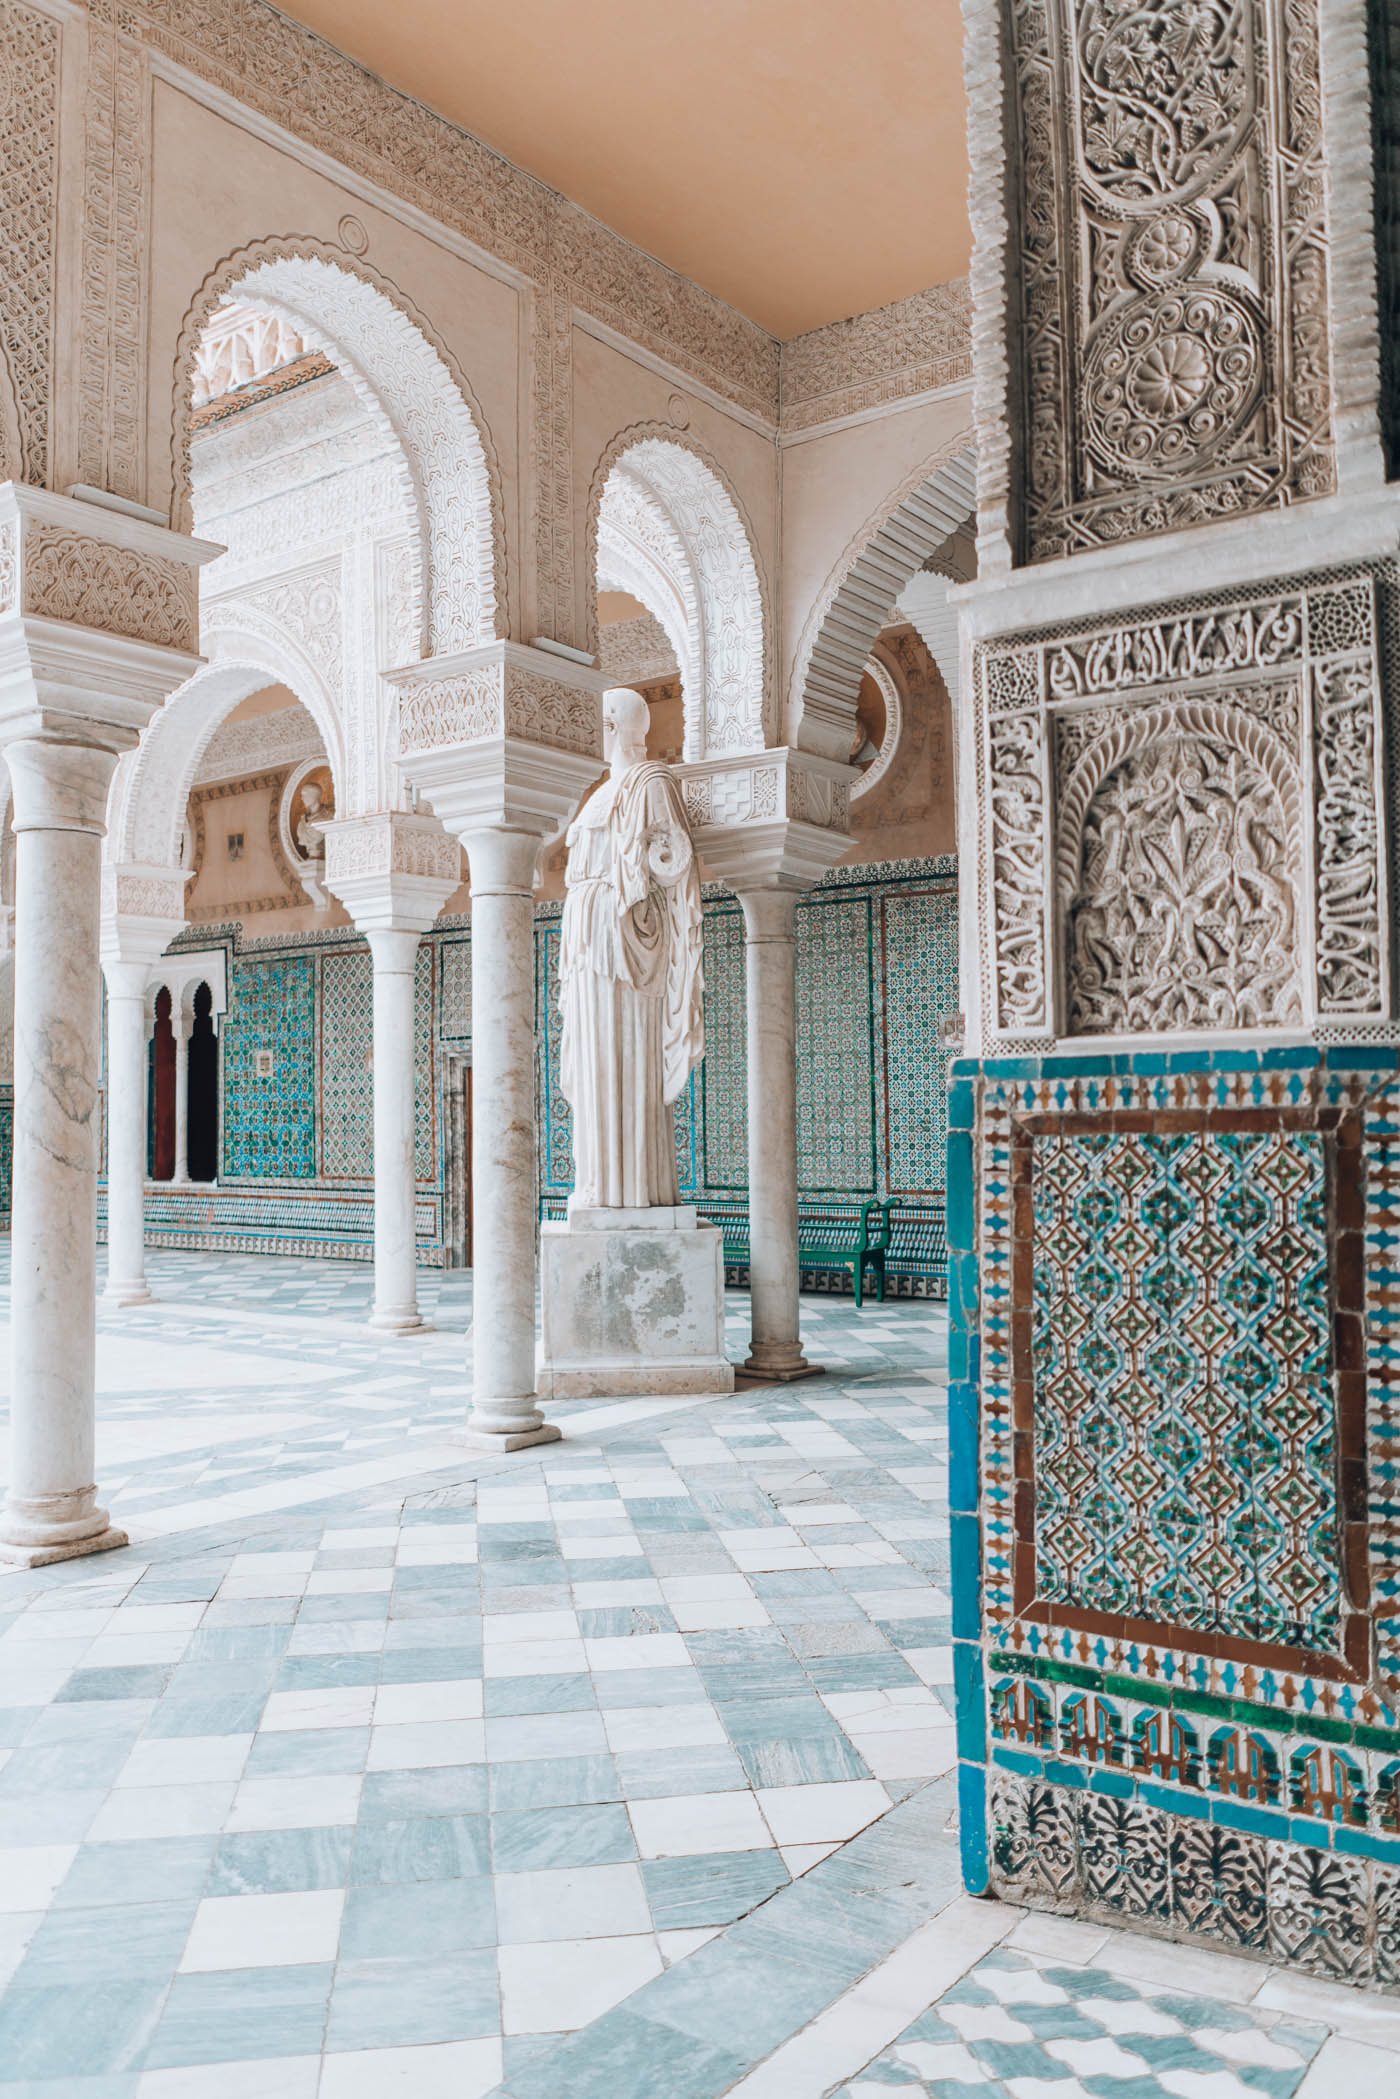 Casa de Pilatos, 48 Hours in Seville, Guide, History in High Heels